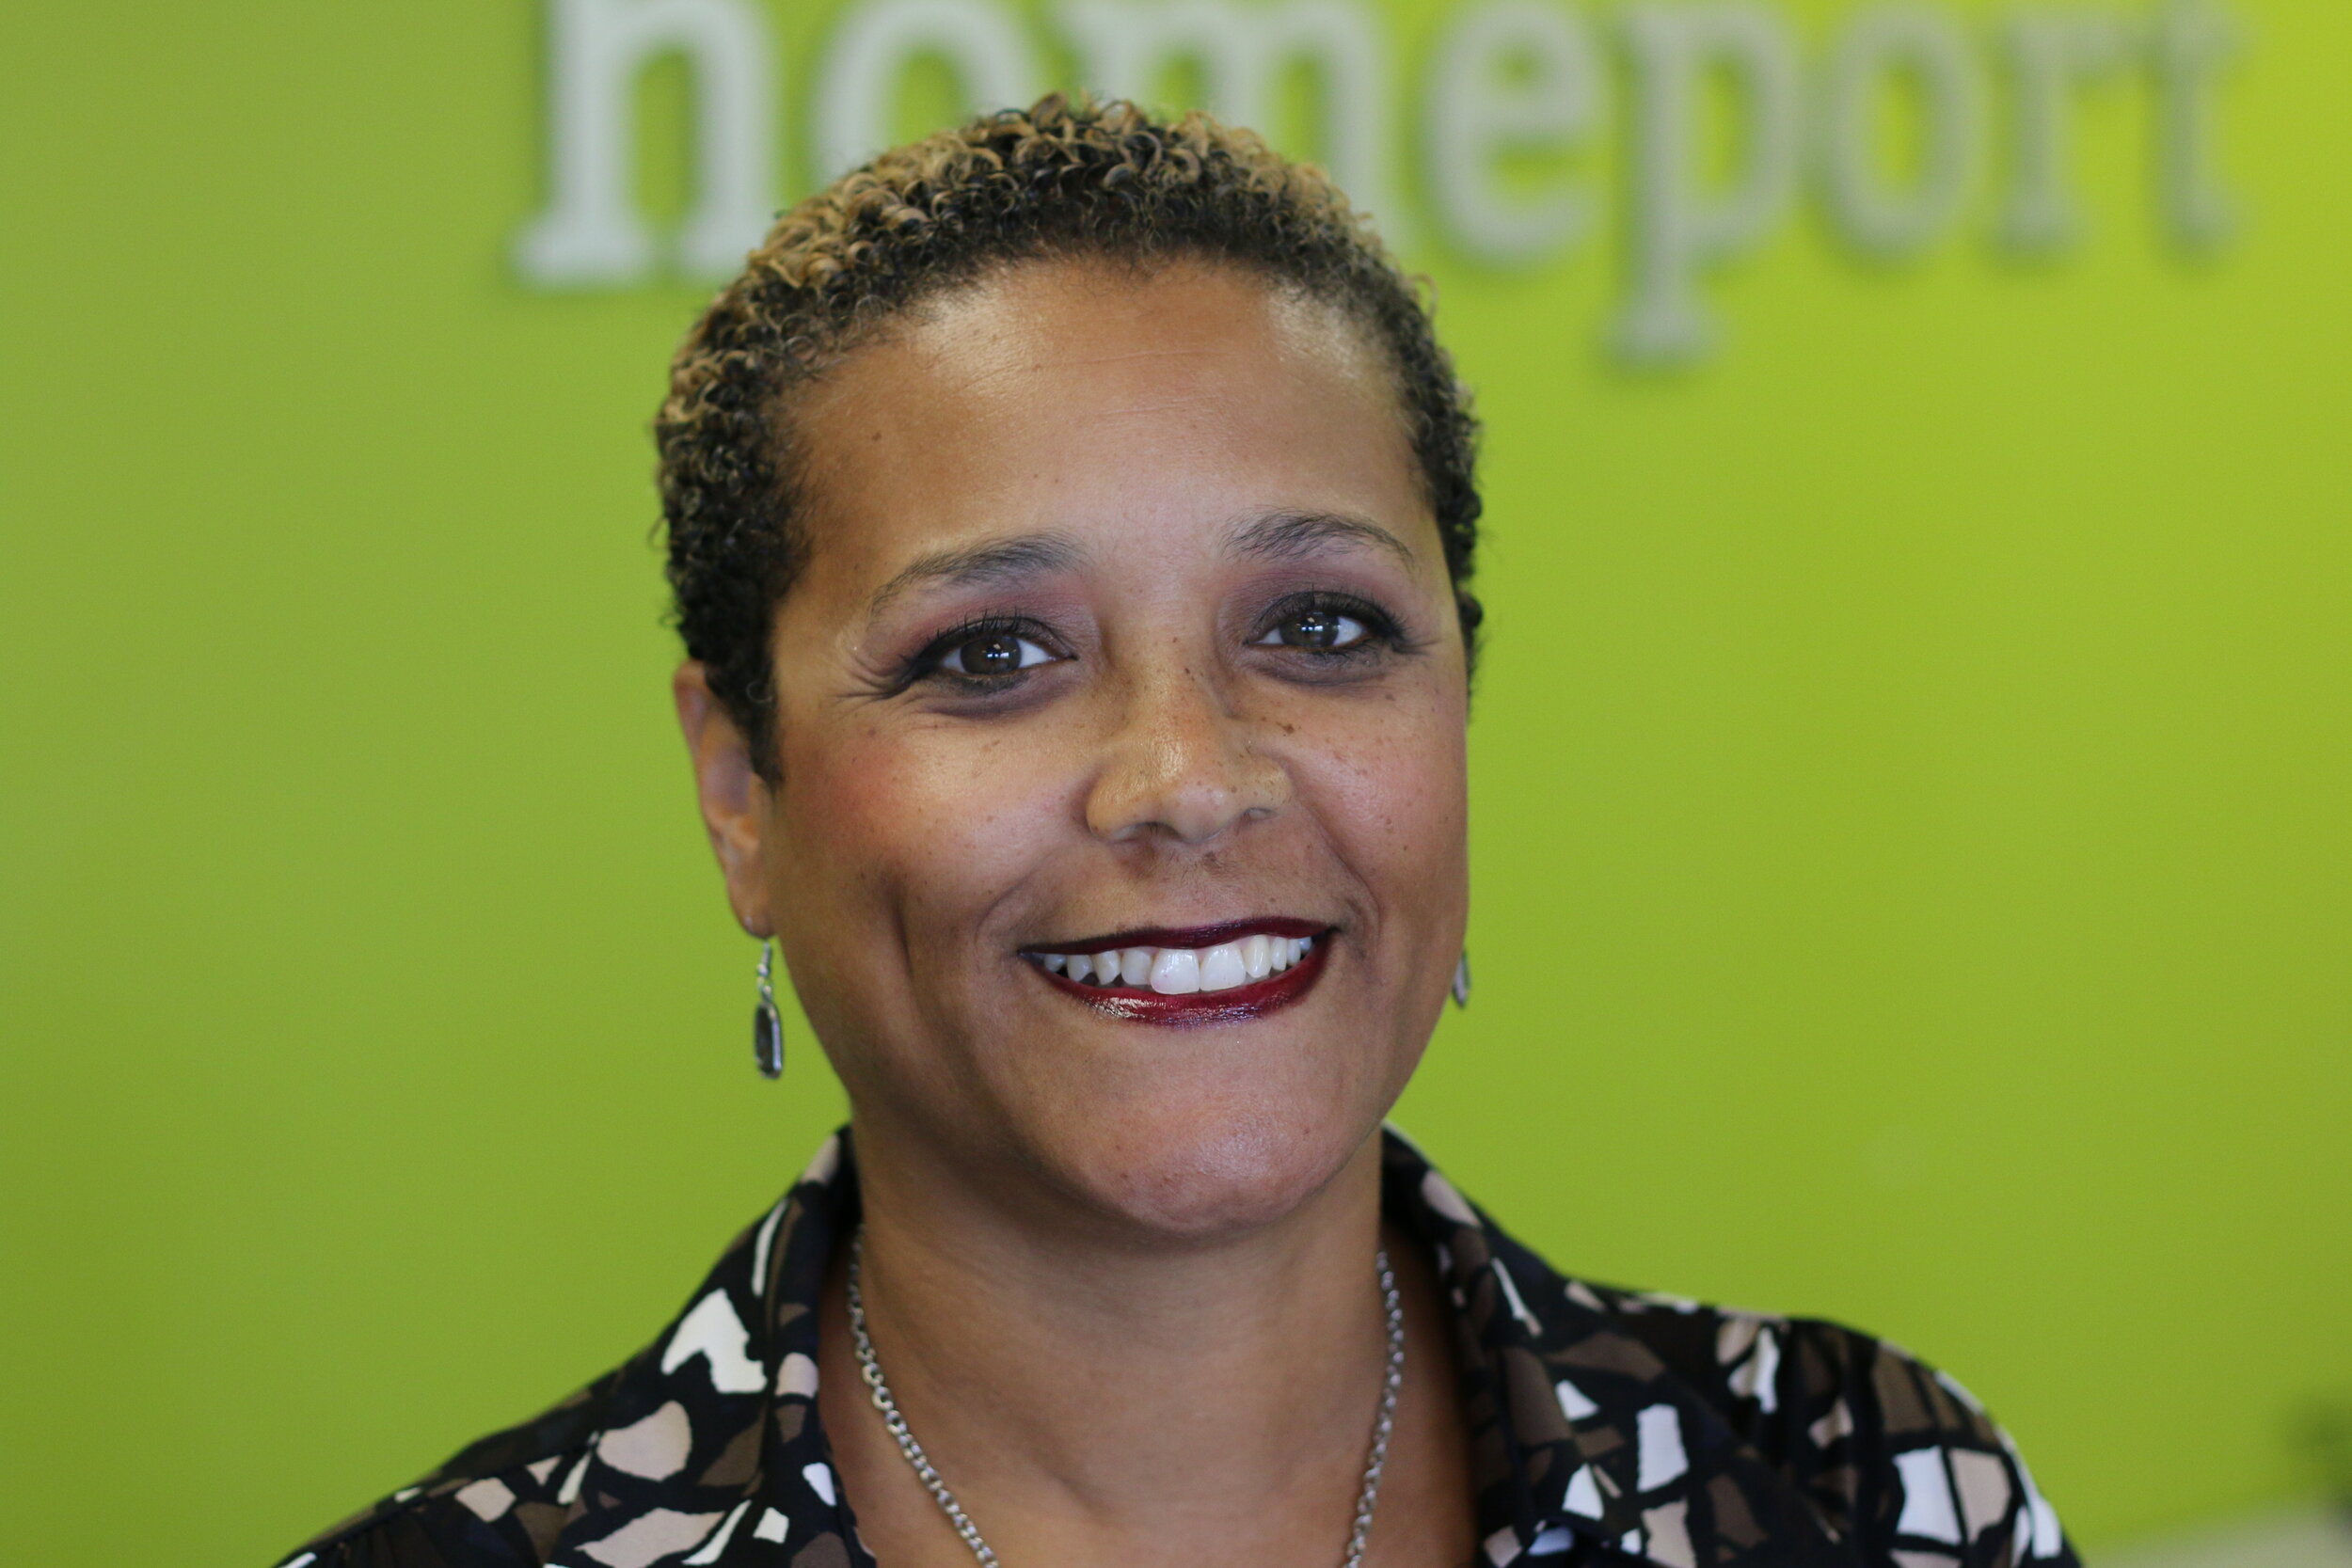 Learn more about Laverne Price from her Homeport Employee Profile.